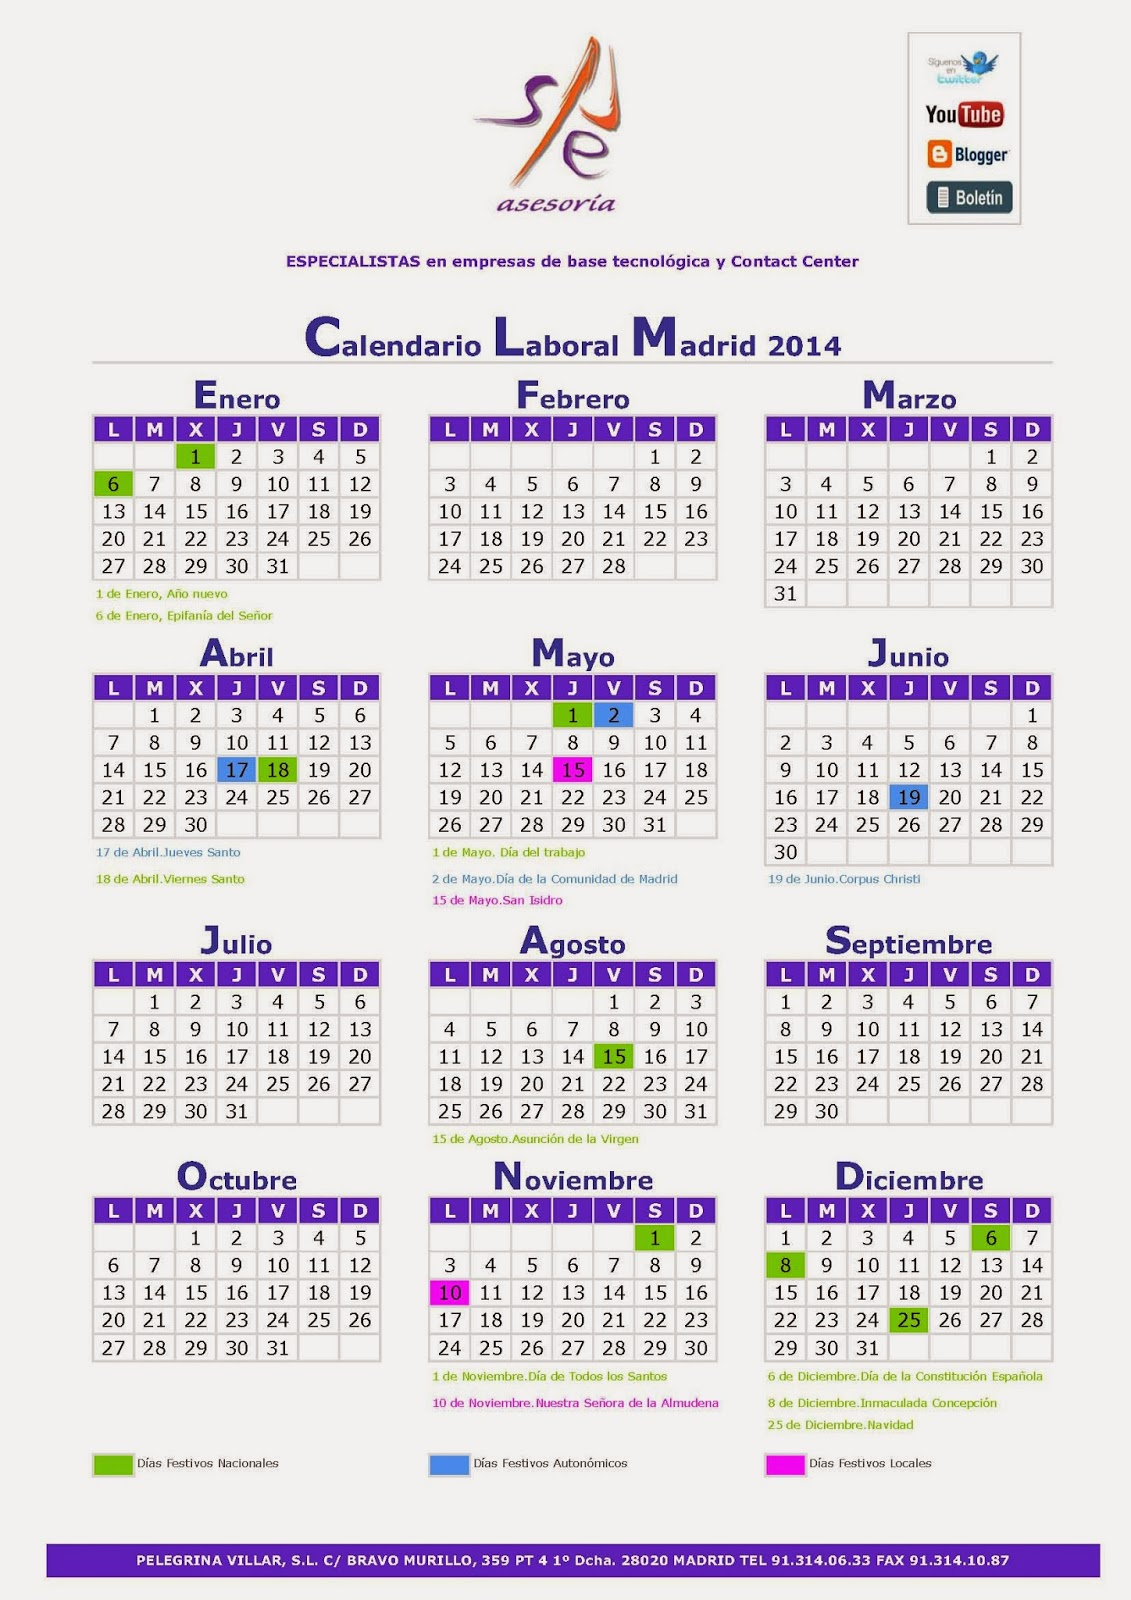 Calendario Laboral De Madrid En 2014 Calendariolaboral ...